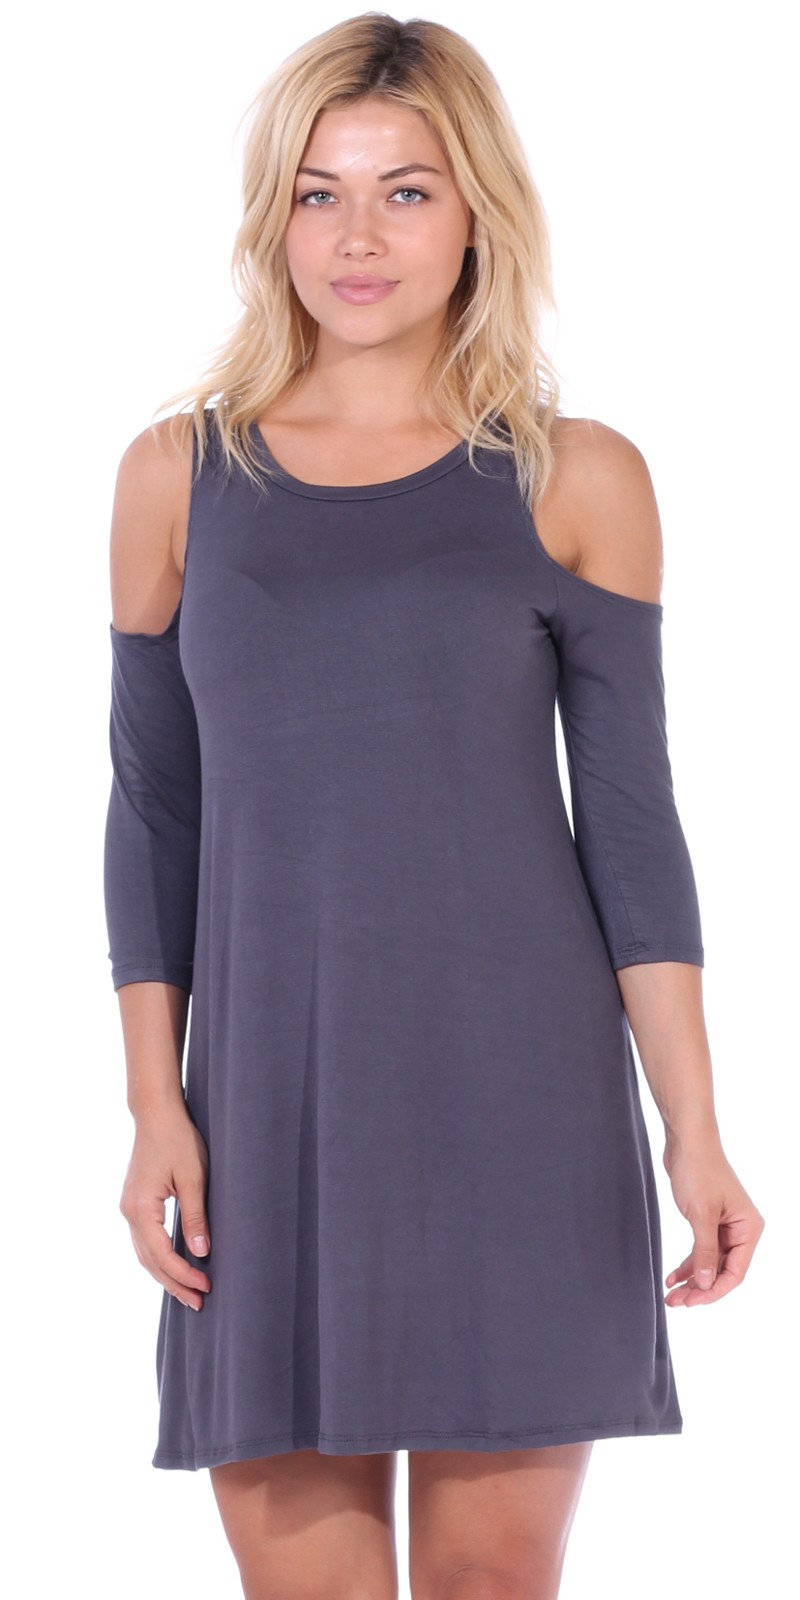 Womens Cold Shoulder Shift Flowy Dress Round Neck 3/4 Sleeve - Made In USA - Slate